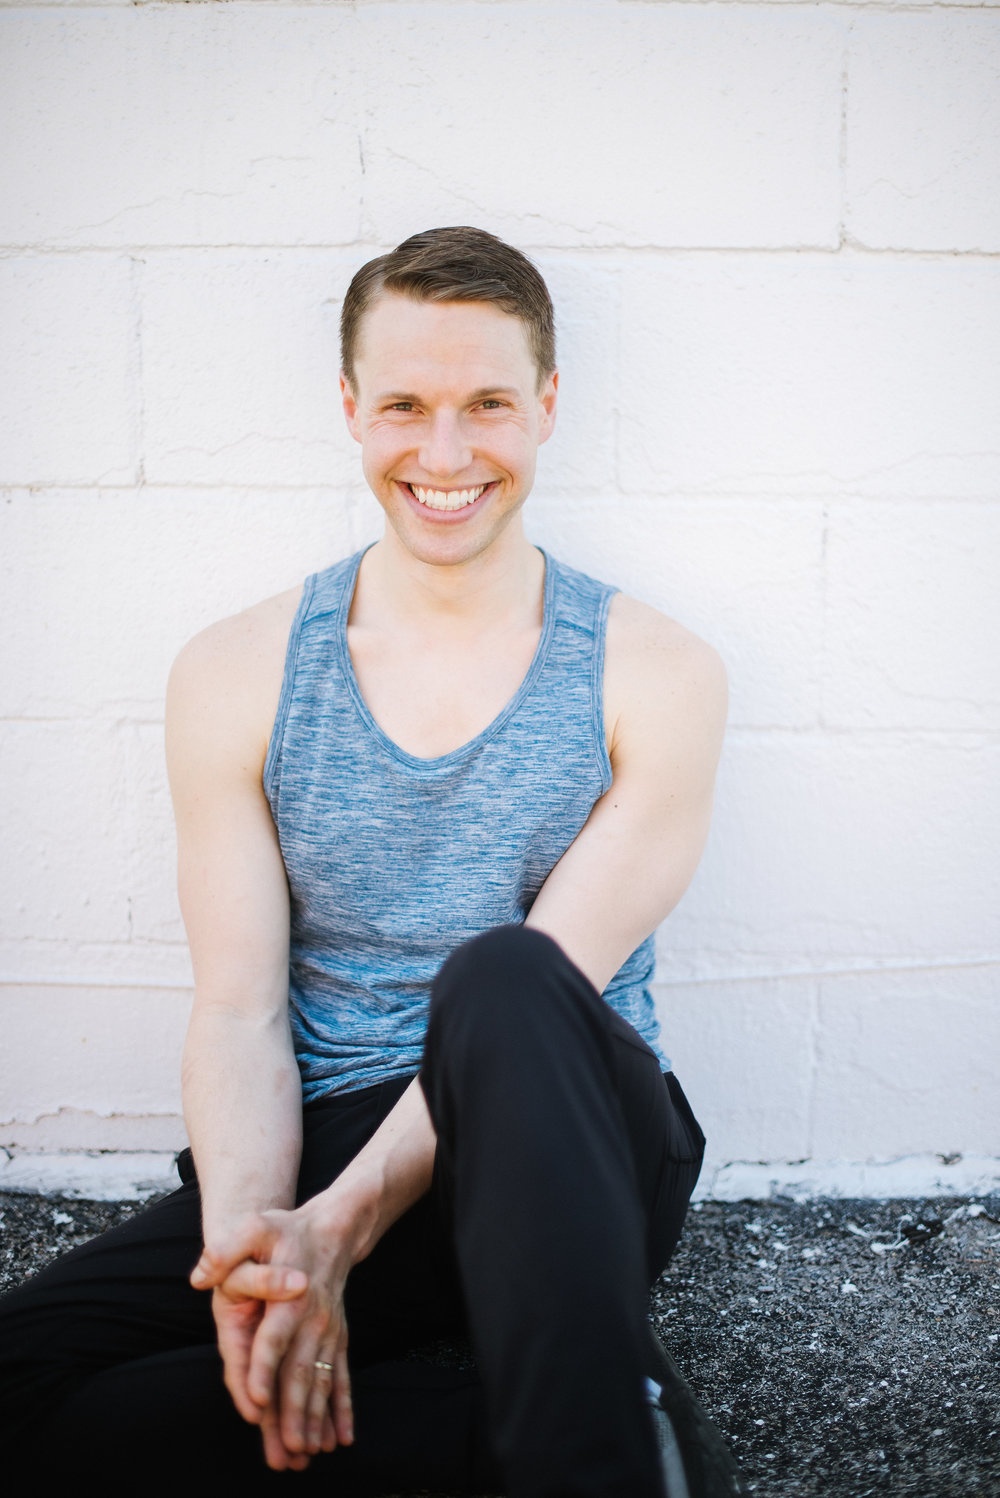 Scott Bartel, Manager   Positive vibes and joyful connection are at the core of every class Scott teaches, as he encourages students to breathe, move with power and set intentions that affect positive growth on and off the mat. Come to class prepared to smile and sweat.  Scott started practicing yoga in early 2016 as an extension of his regular workout routine and quickly knew it would become a life-long journey. Since then, he earned his 200-hr Yoga Alliance Certification through Hidden Dragon Yoga and began teaching throughout the OKC area.  As a chef, Scott's philosophy is simple: fresh, simple, quality ingredients prepared beautifully. Cooking has always been a part of Scott's life, but in 2015 he took his love for cooking and created a career. Under Chef Beth Lyon, Scott honed his culinary skills, ultimately becoming Head Chef at Provision Kitchen.  Today, Scott has combined his loves of yoga, cooking and positive energy into Heart Shine. Are you ready to Shine?   FollowYourHeartShine.com